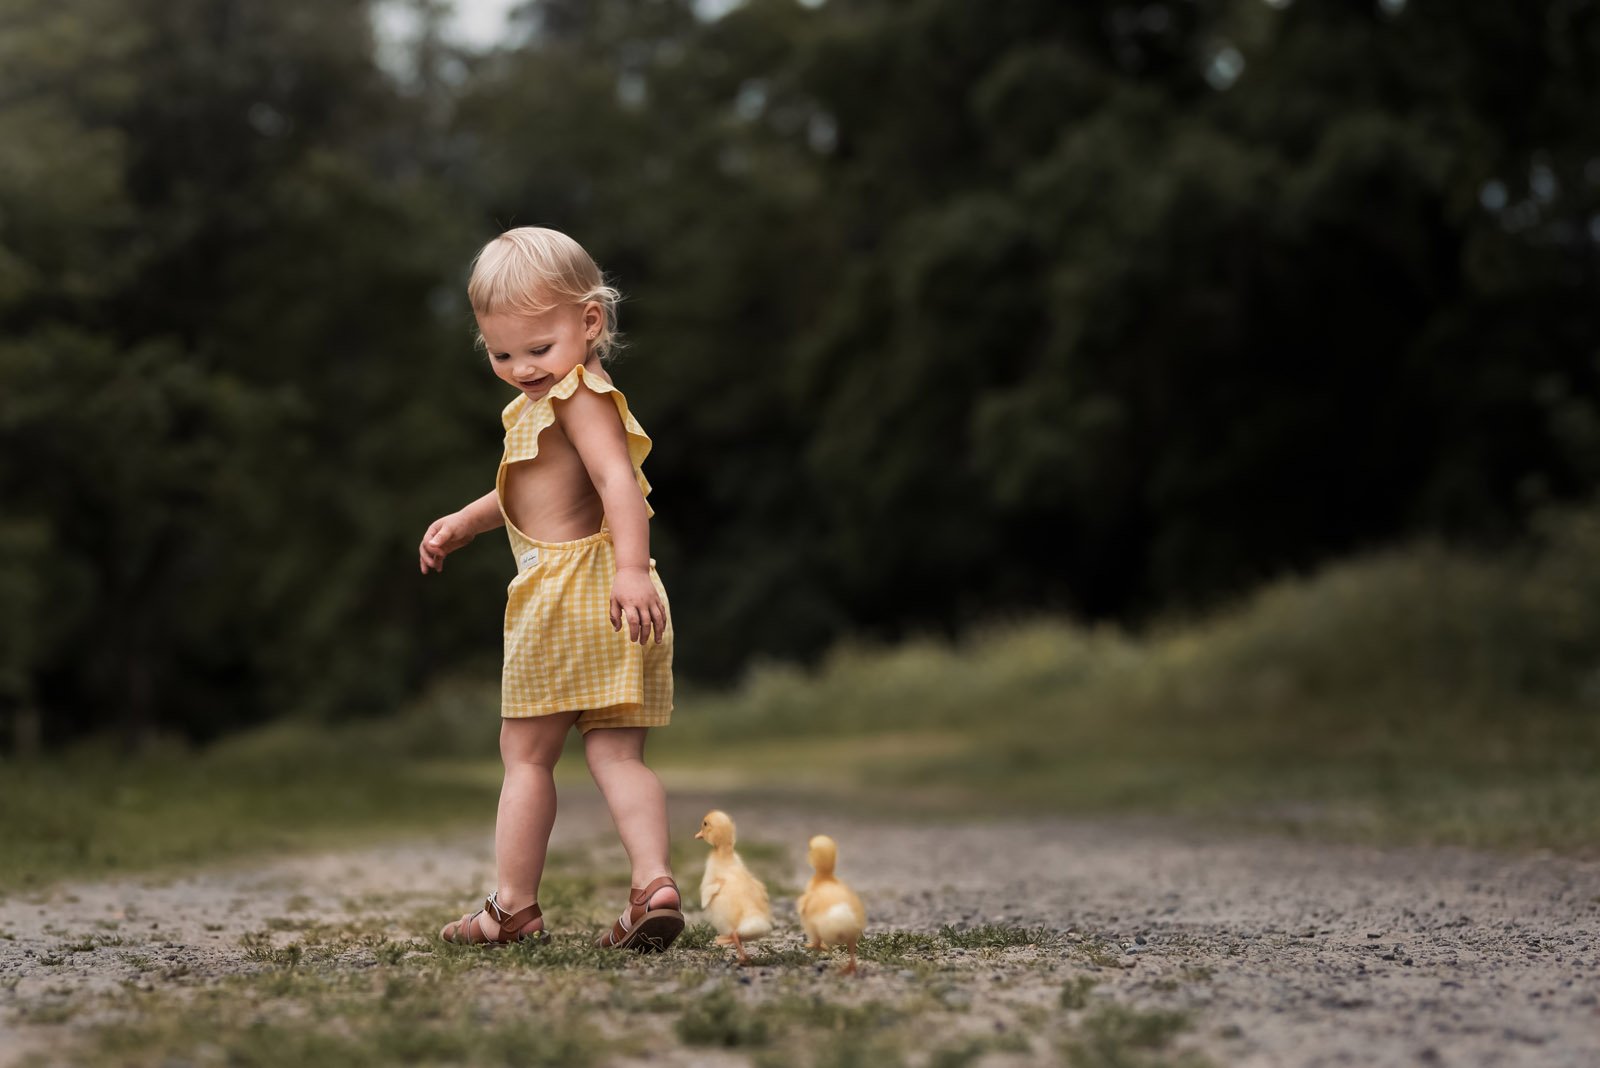 photographing pets ducklings following small girl along path by melissa haugen